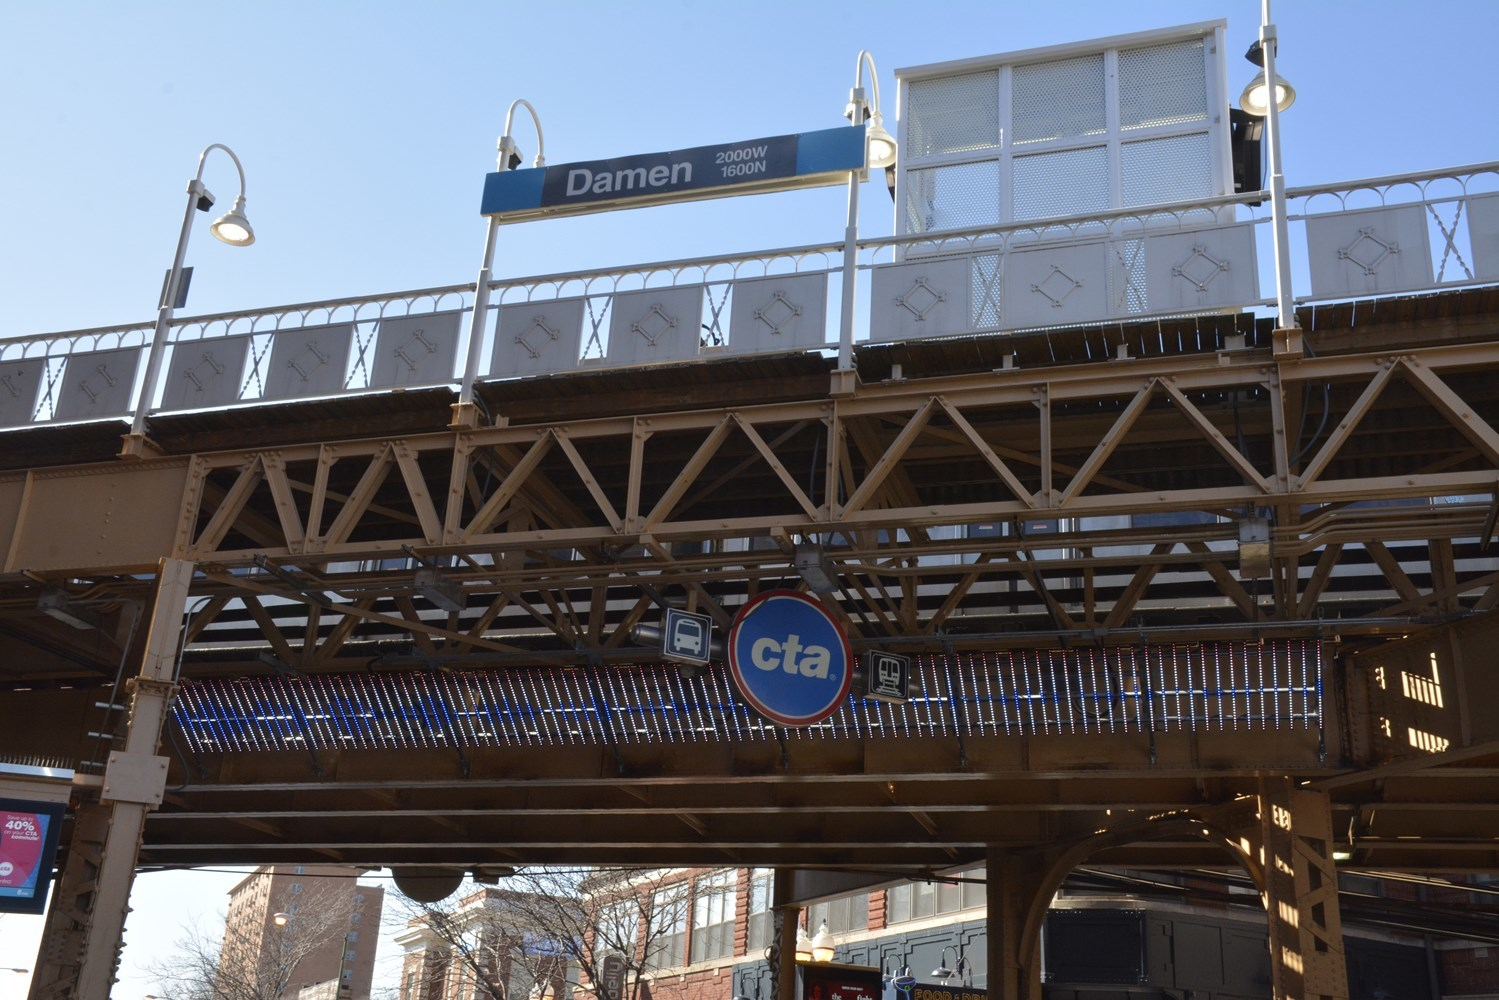 The interactive, LED screen artowork known as Soundtrack can be seen on the north side of the Damen Blue Line viaduct.